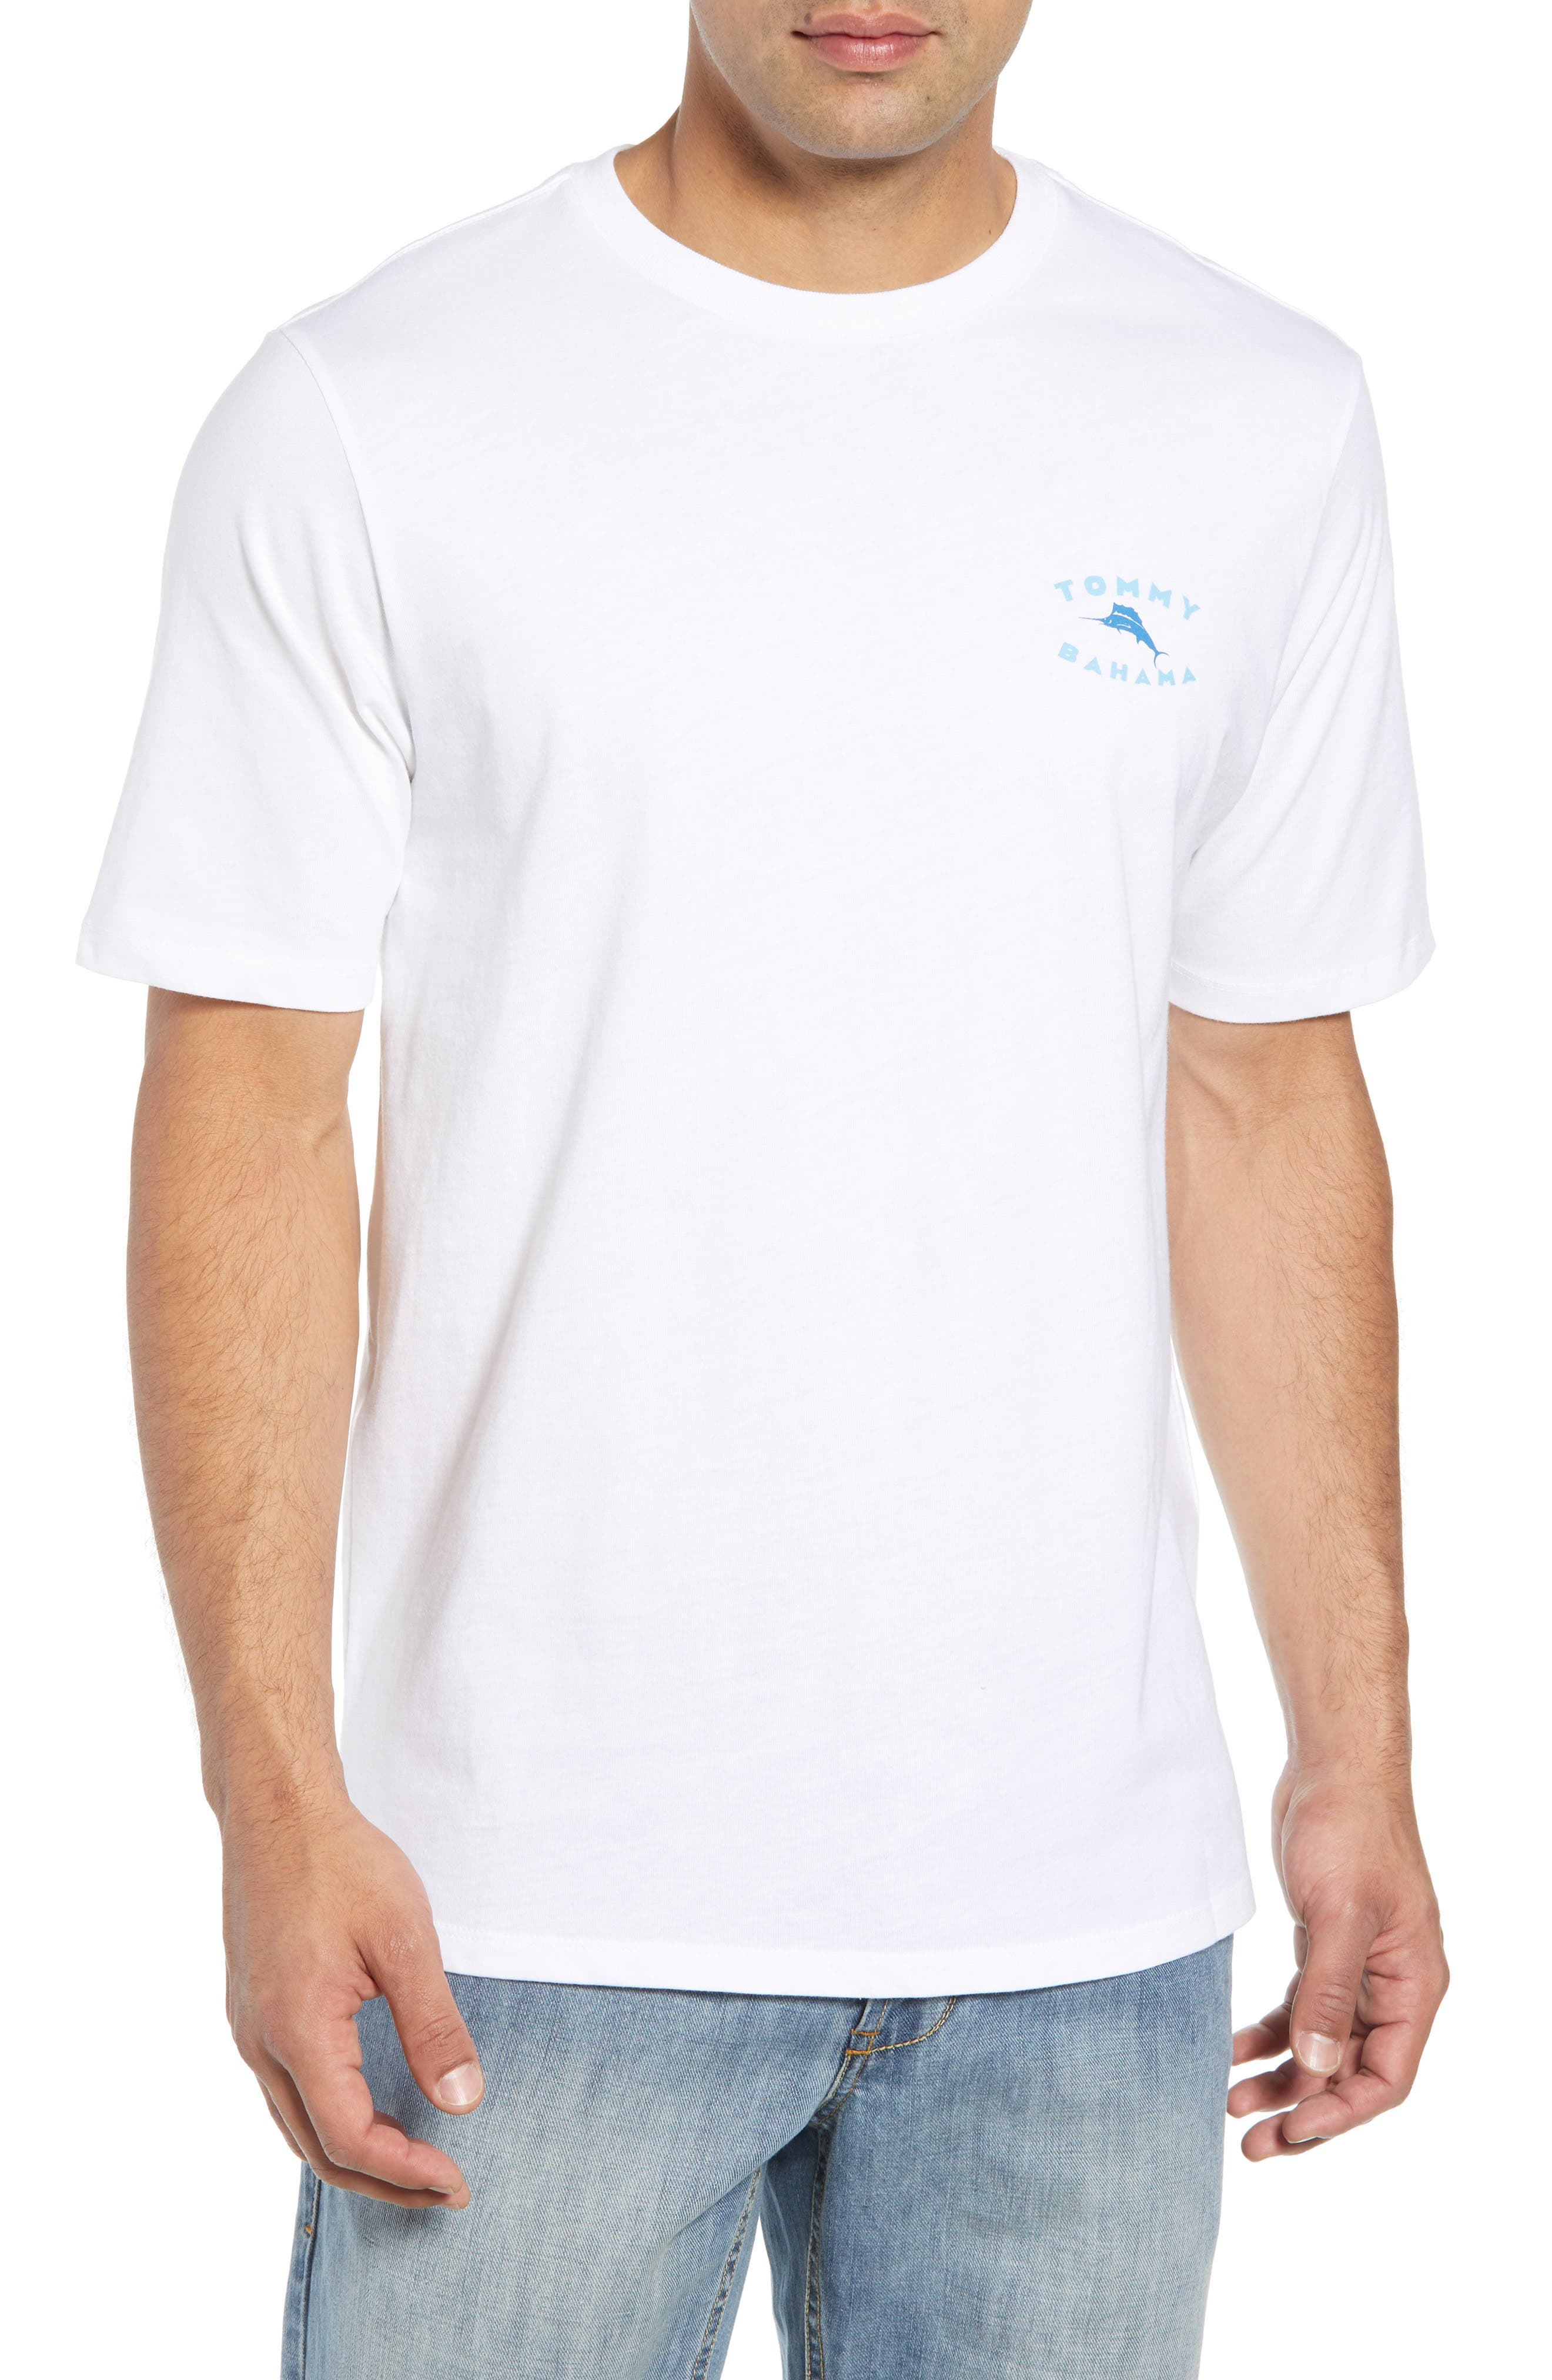 Complete Transparency T-Shirt,                             Main thumbnail 1, color,                             100